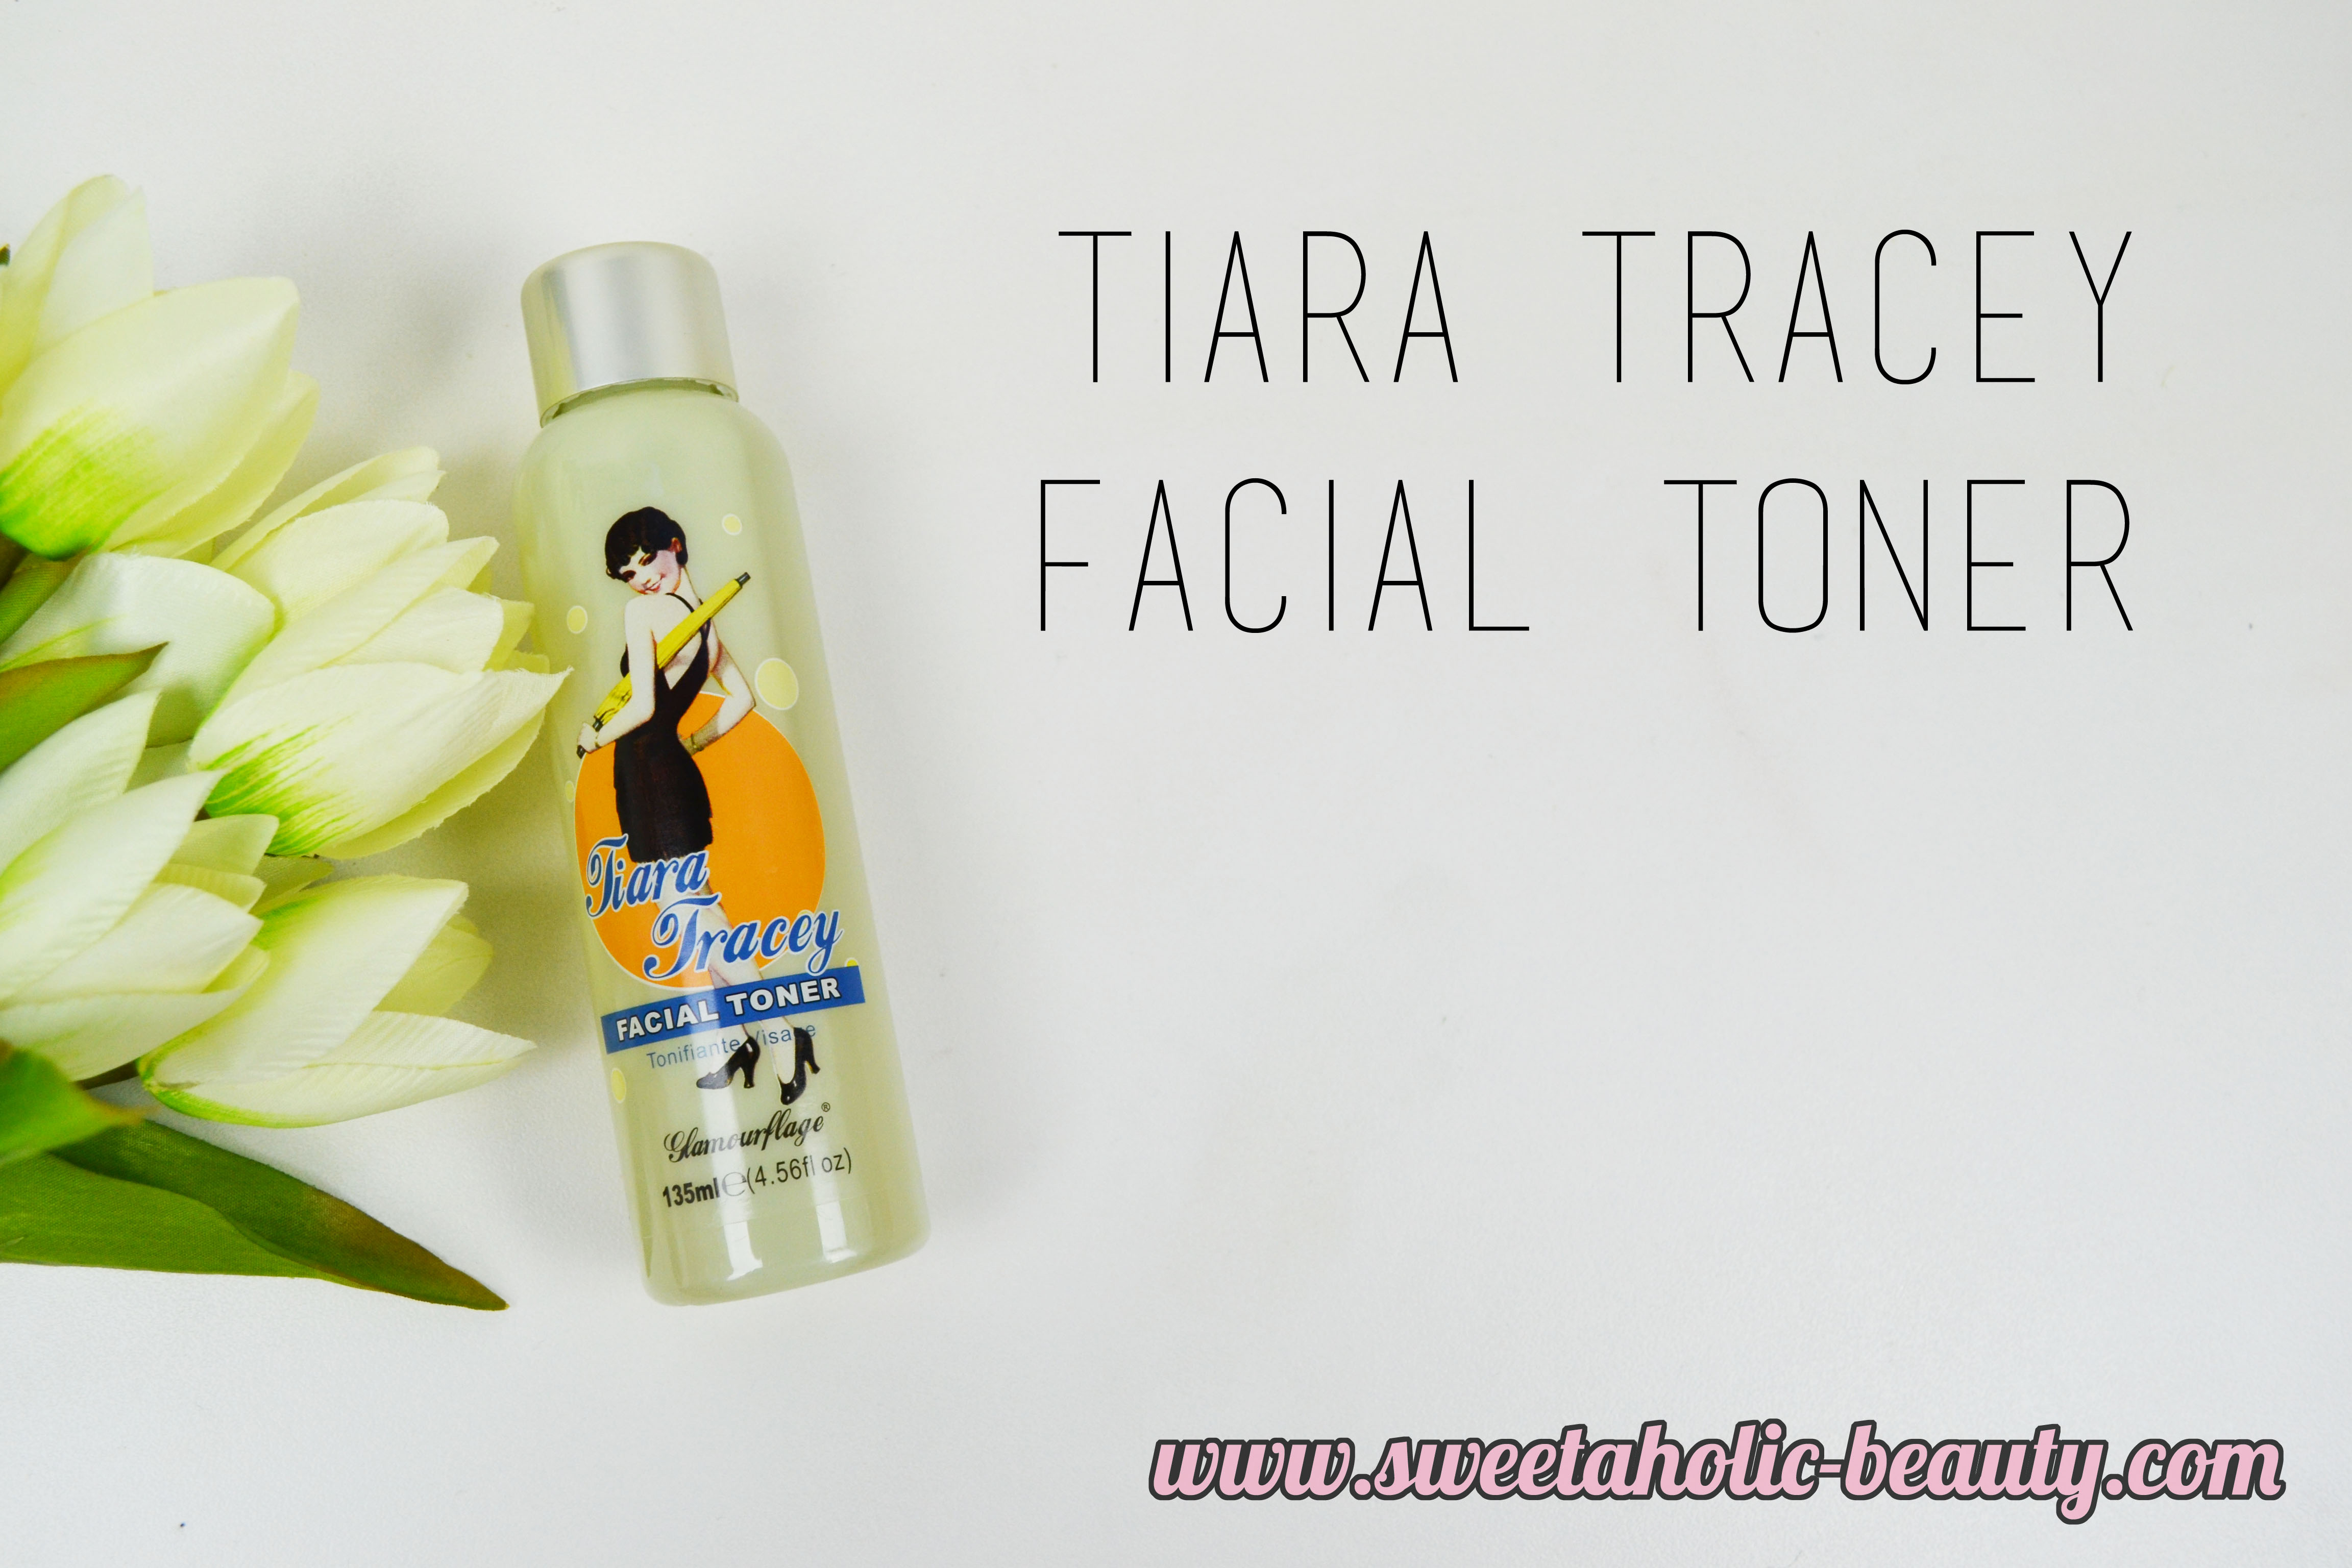 Glamourflage Skincare Tiara Tracey Facial Toner Review - Sweetaholic Beauty